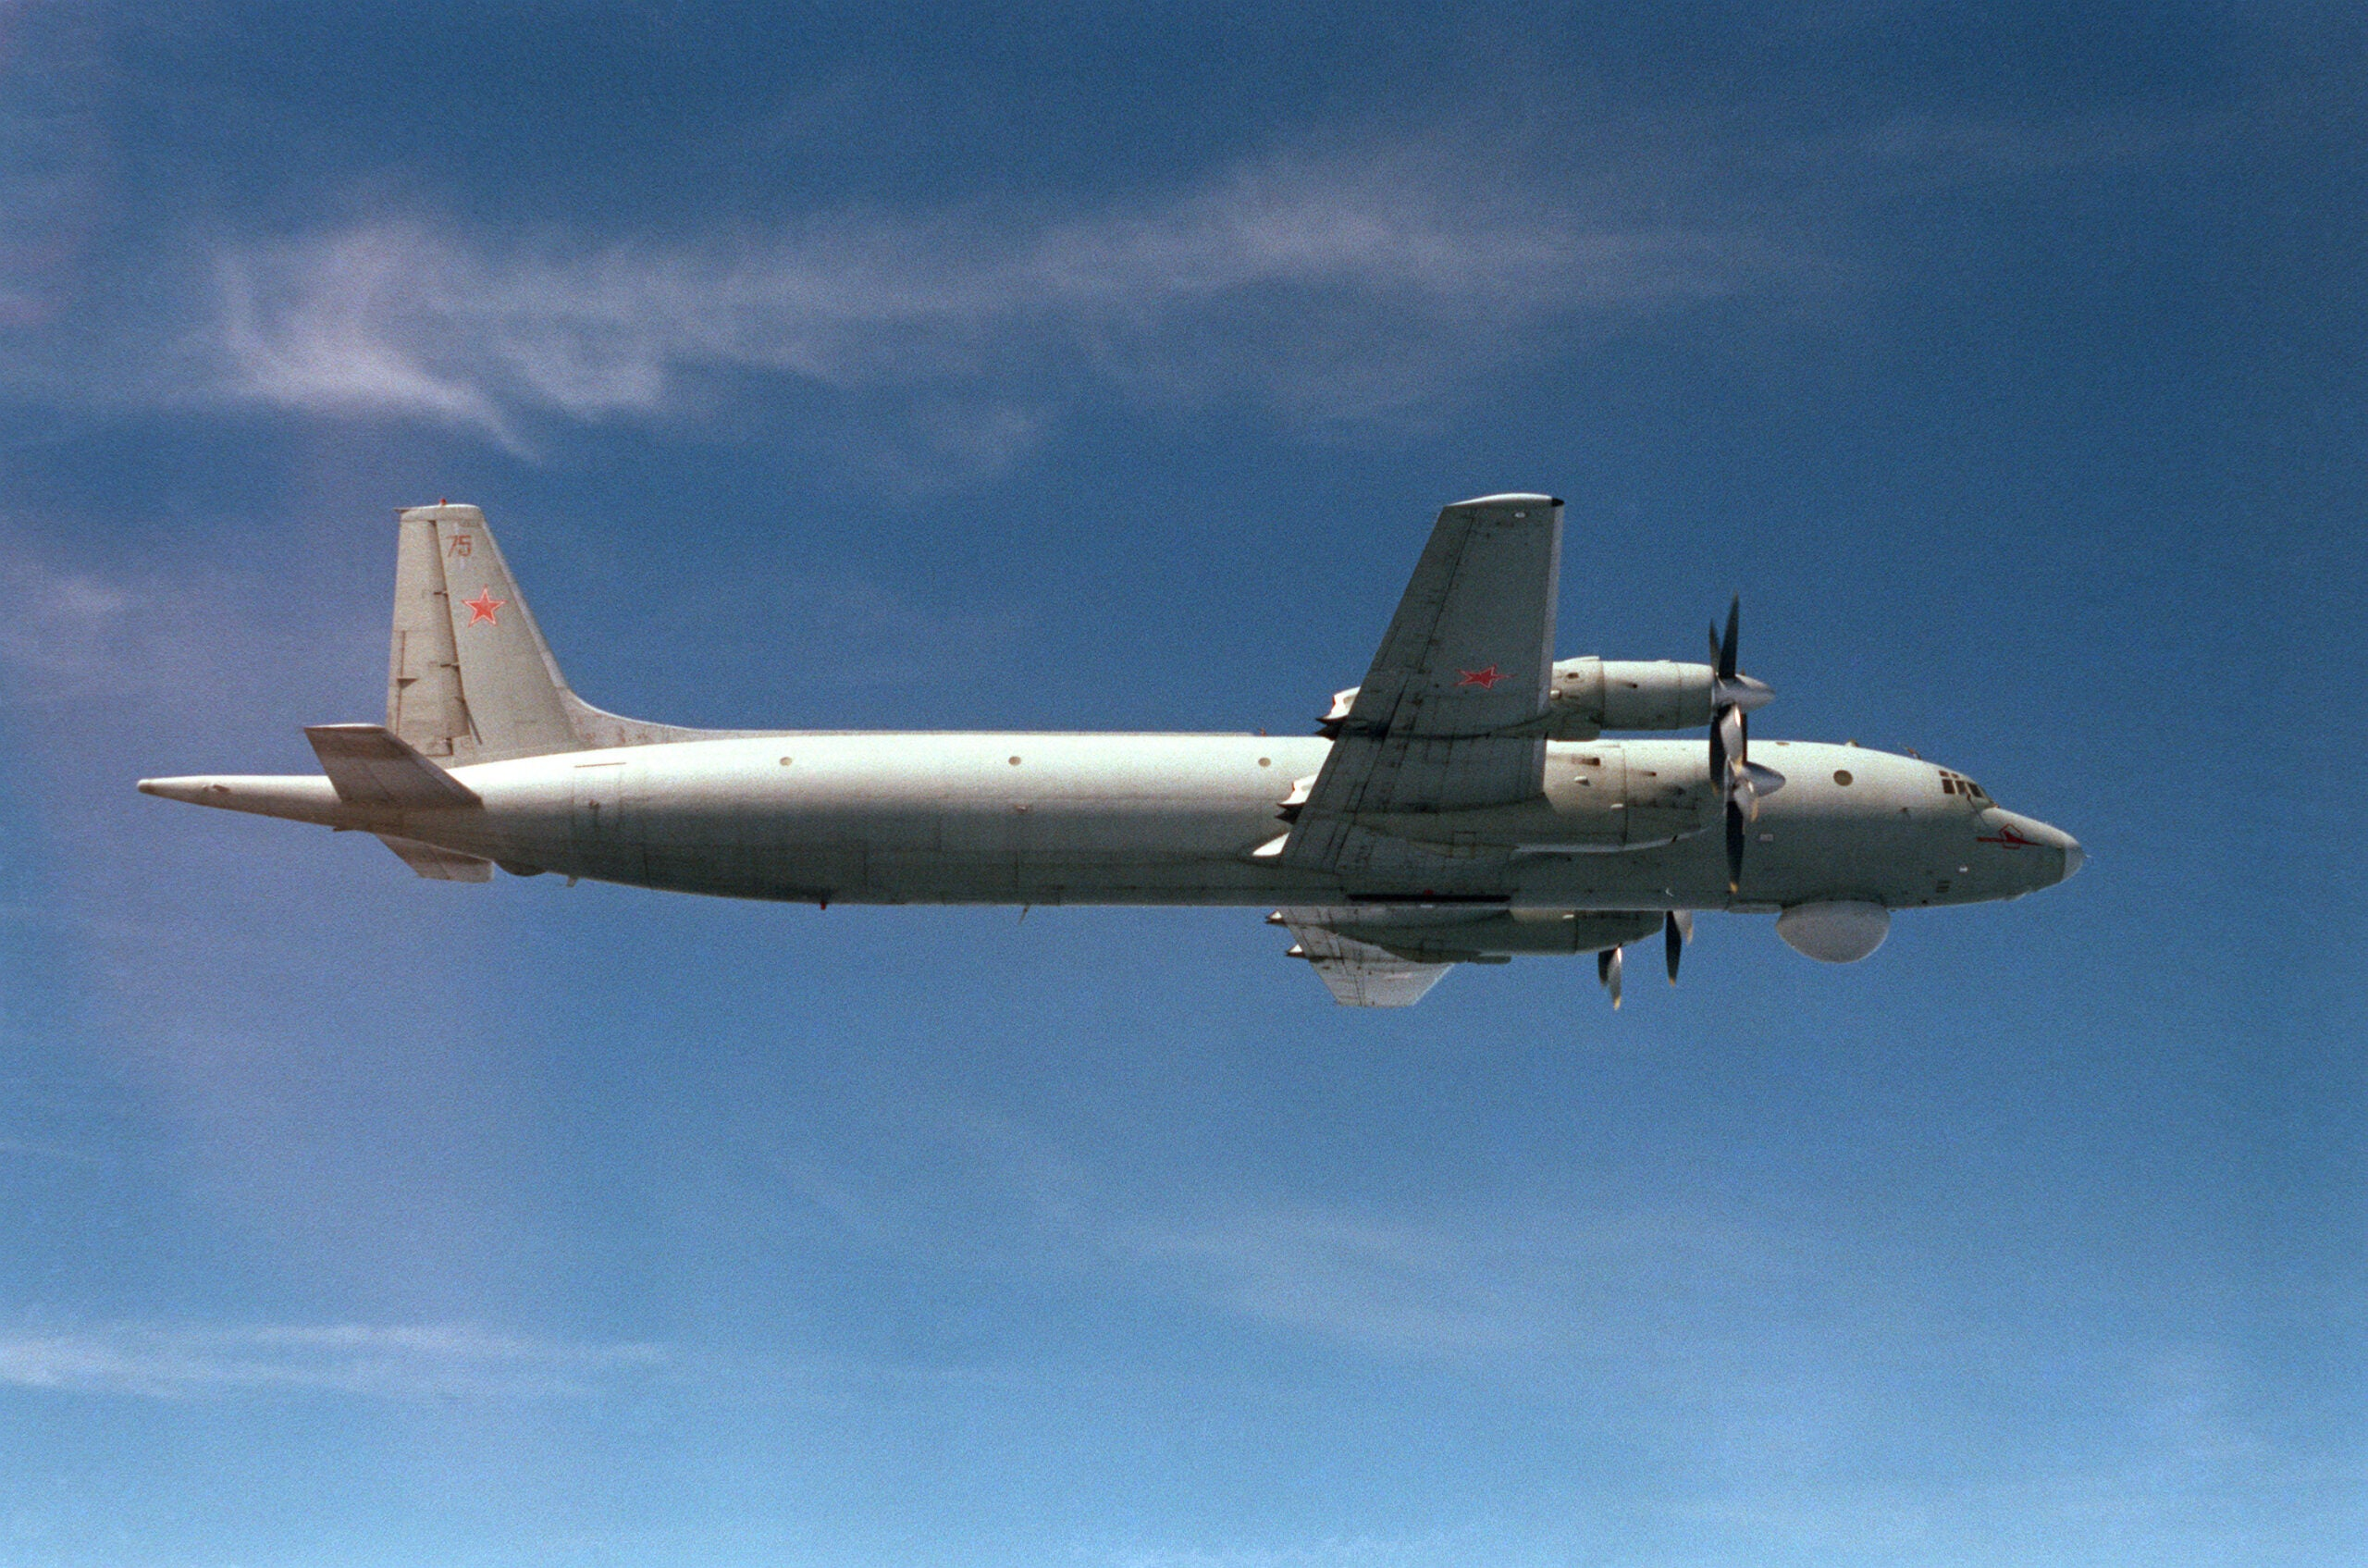 US fighter jets intercept Russian aircraft in fifth Alaskan incursion this month